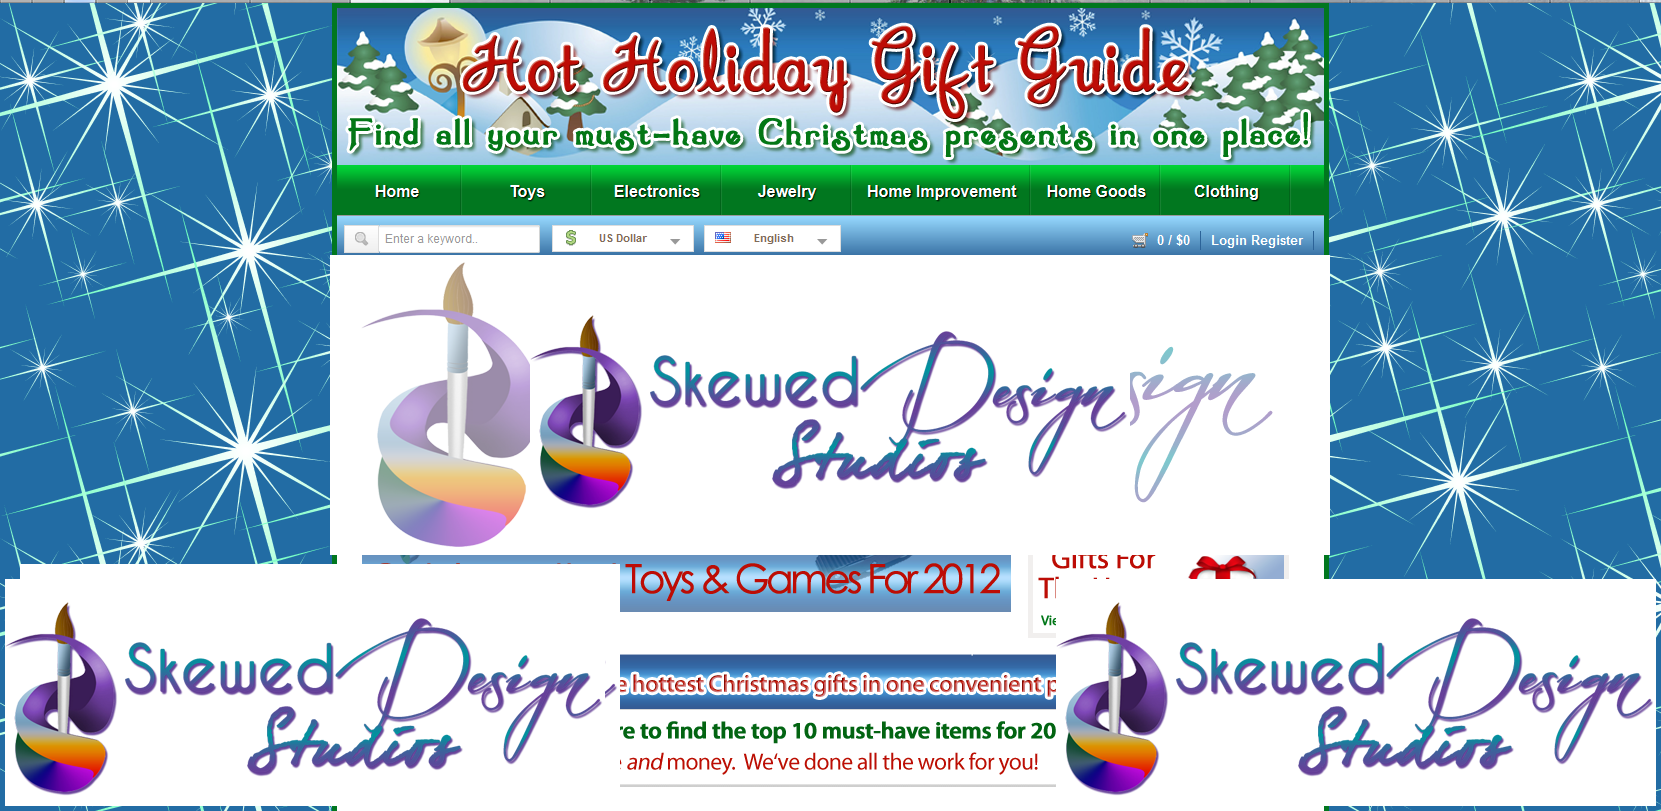 hot-holiday-gift-guide